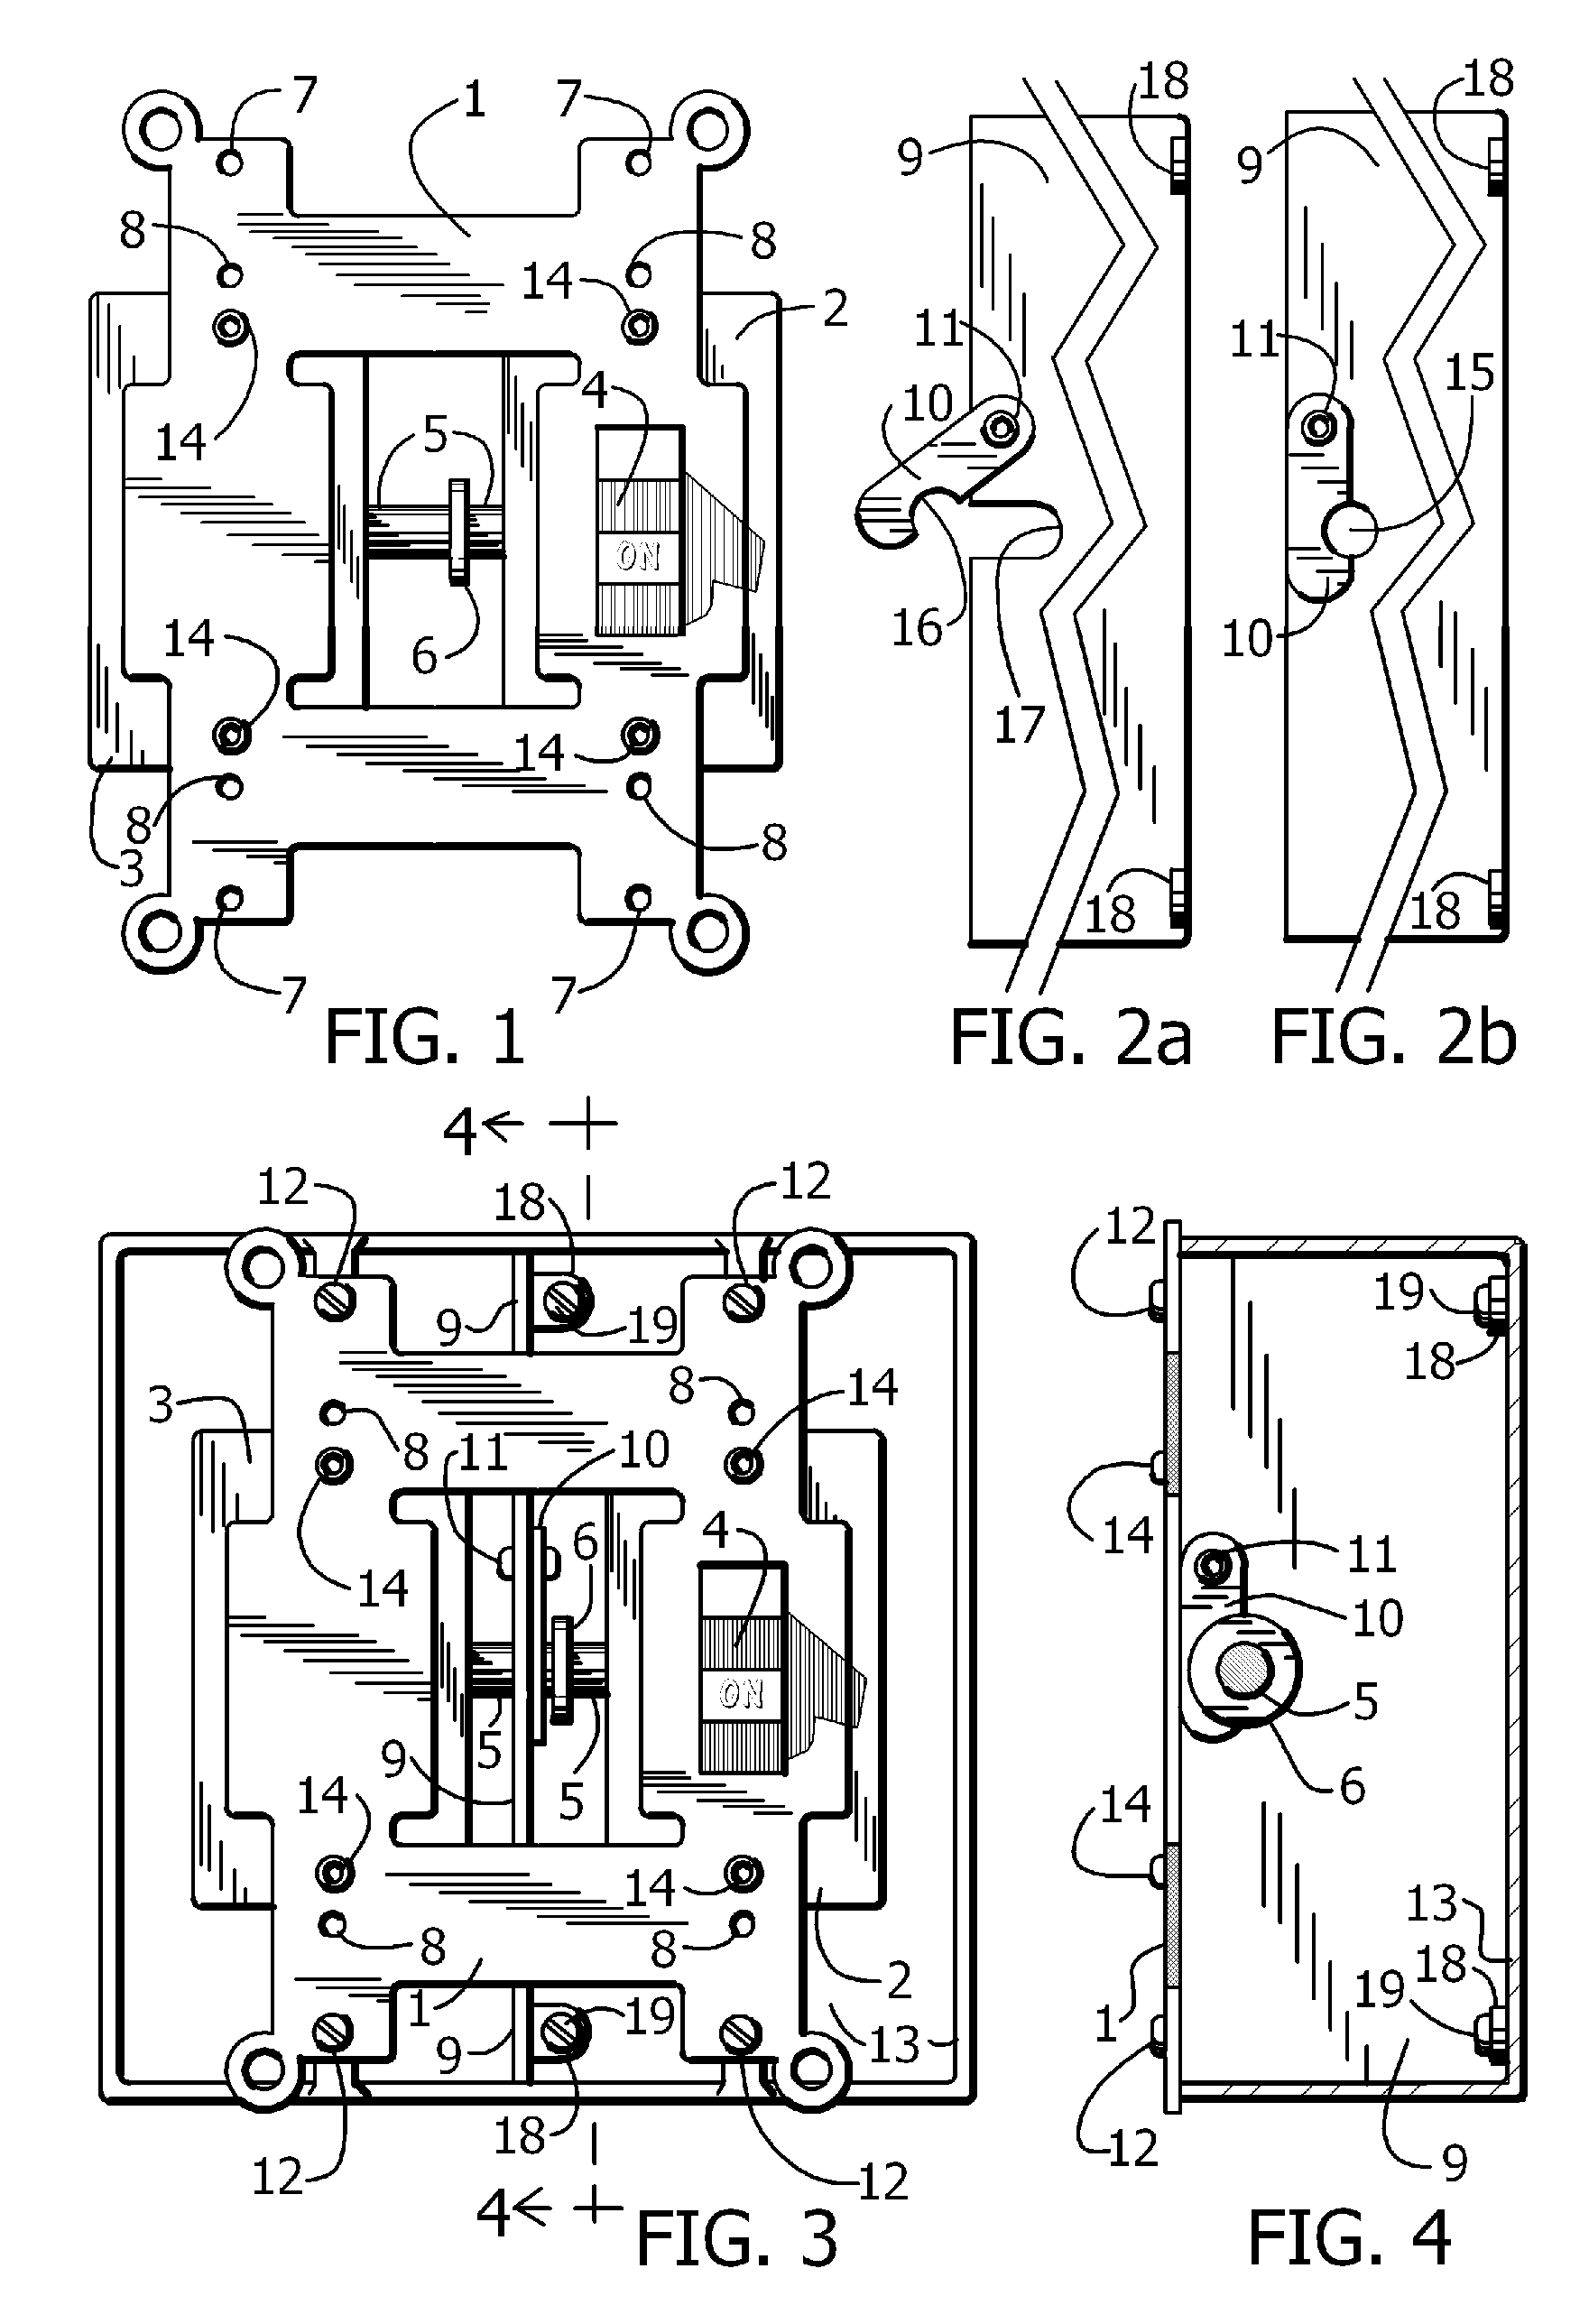 Bodine Gtd Wiring Diagram : 25 Wiring Diagram Images